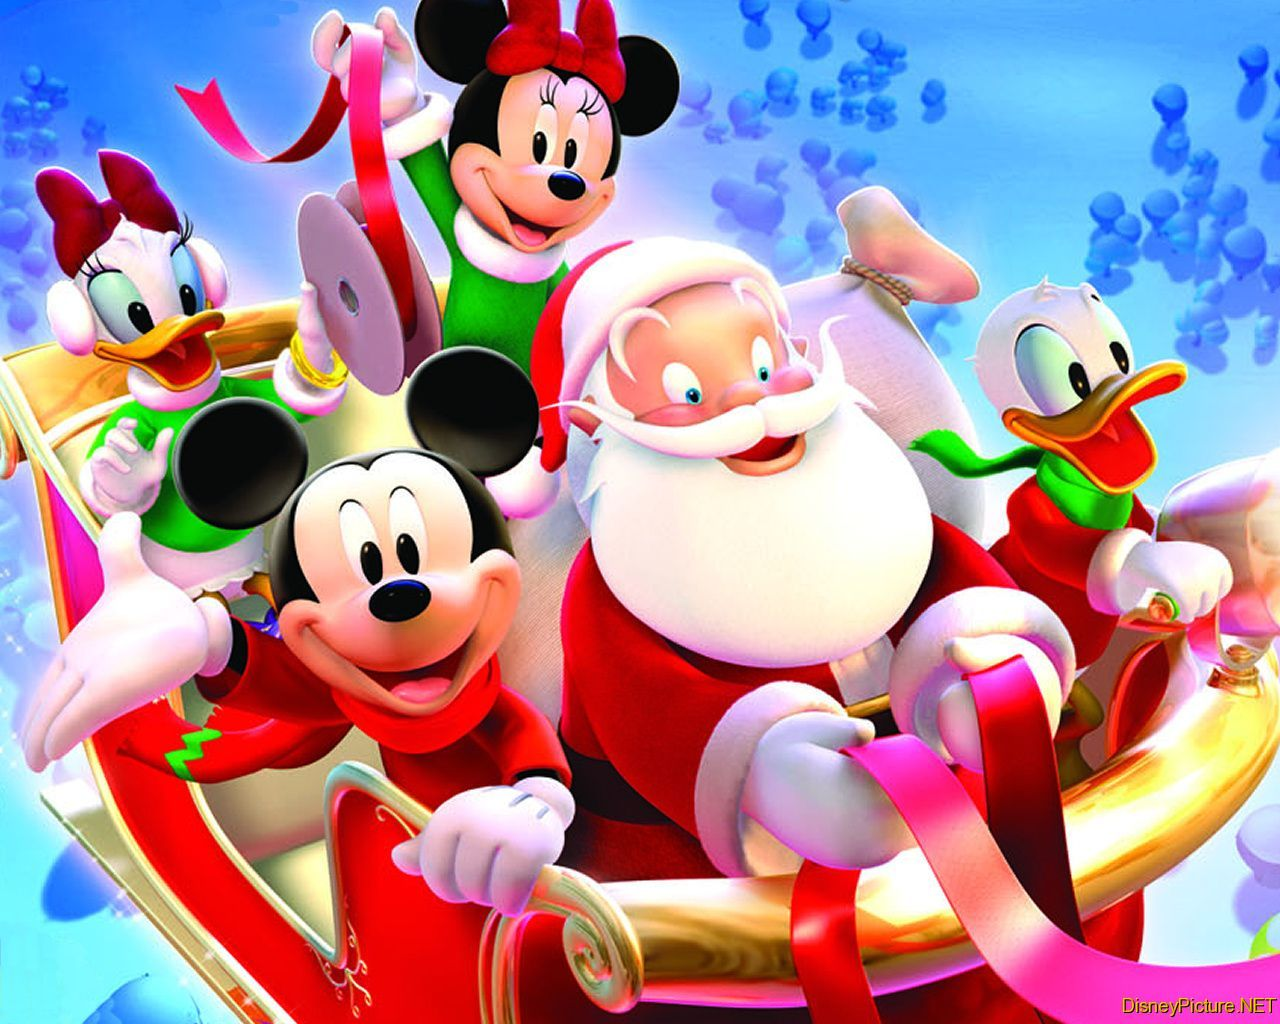 Disney Christmas Desktop Backgrounds wallpaper Disney 1280x1024